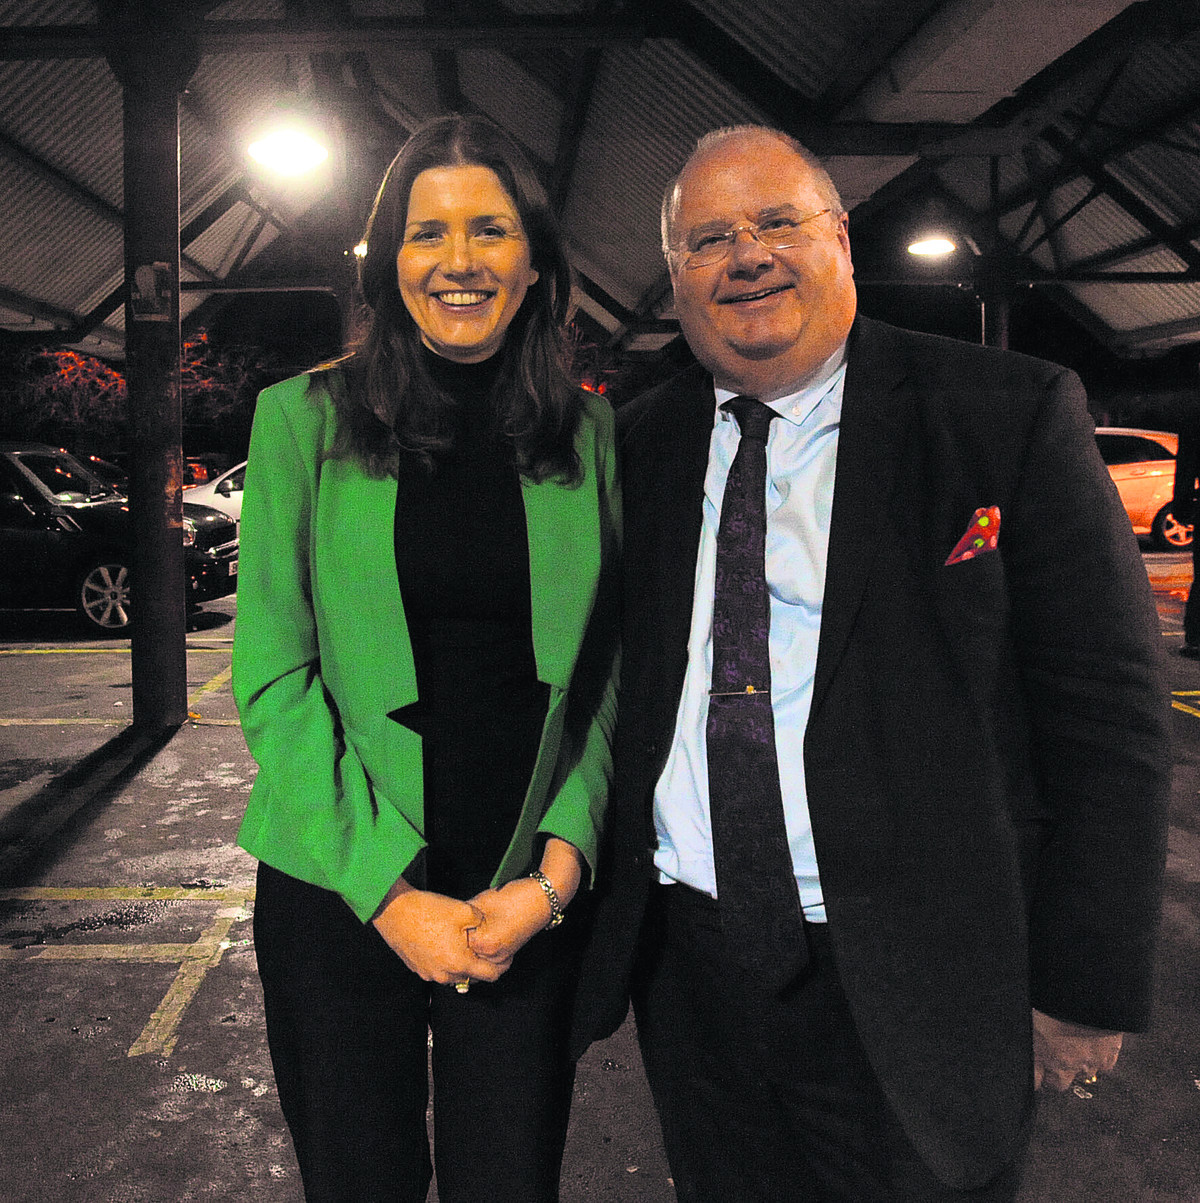 Councils must offer free parking, says Communities secretary Eric Pickles during Wiltshire visit